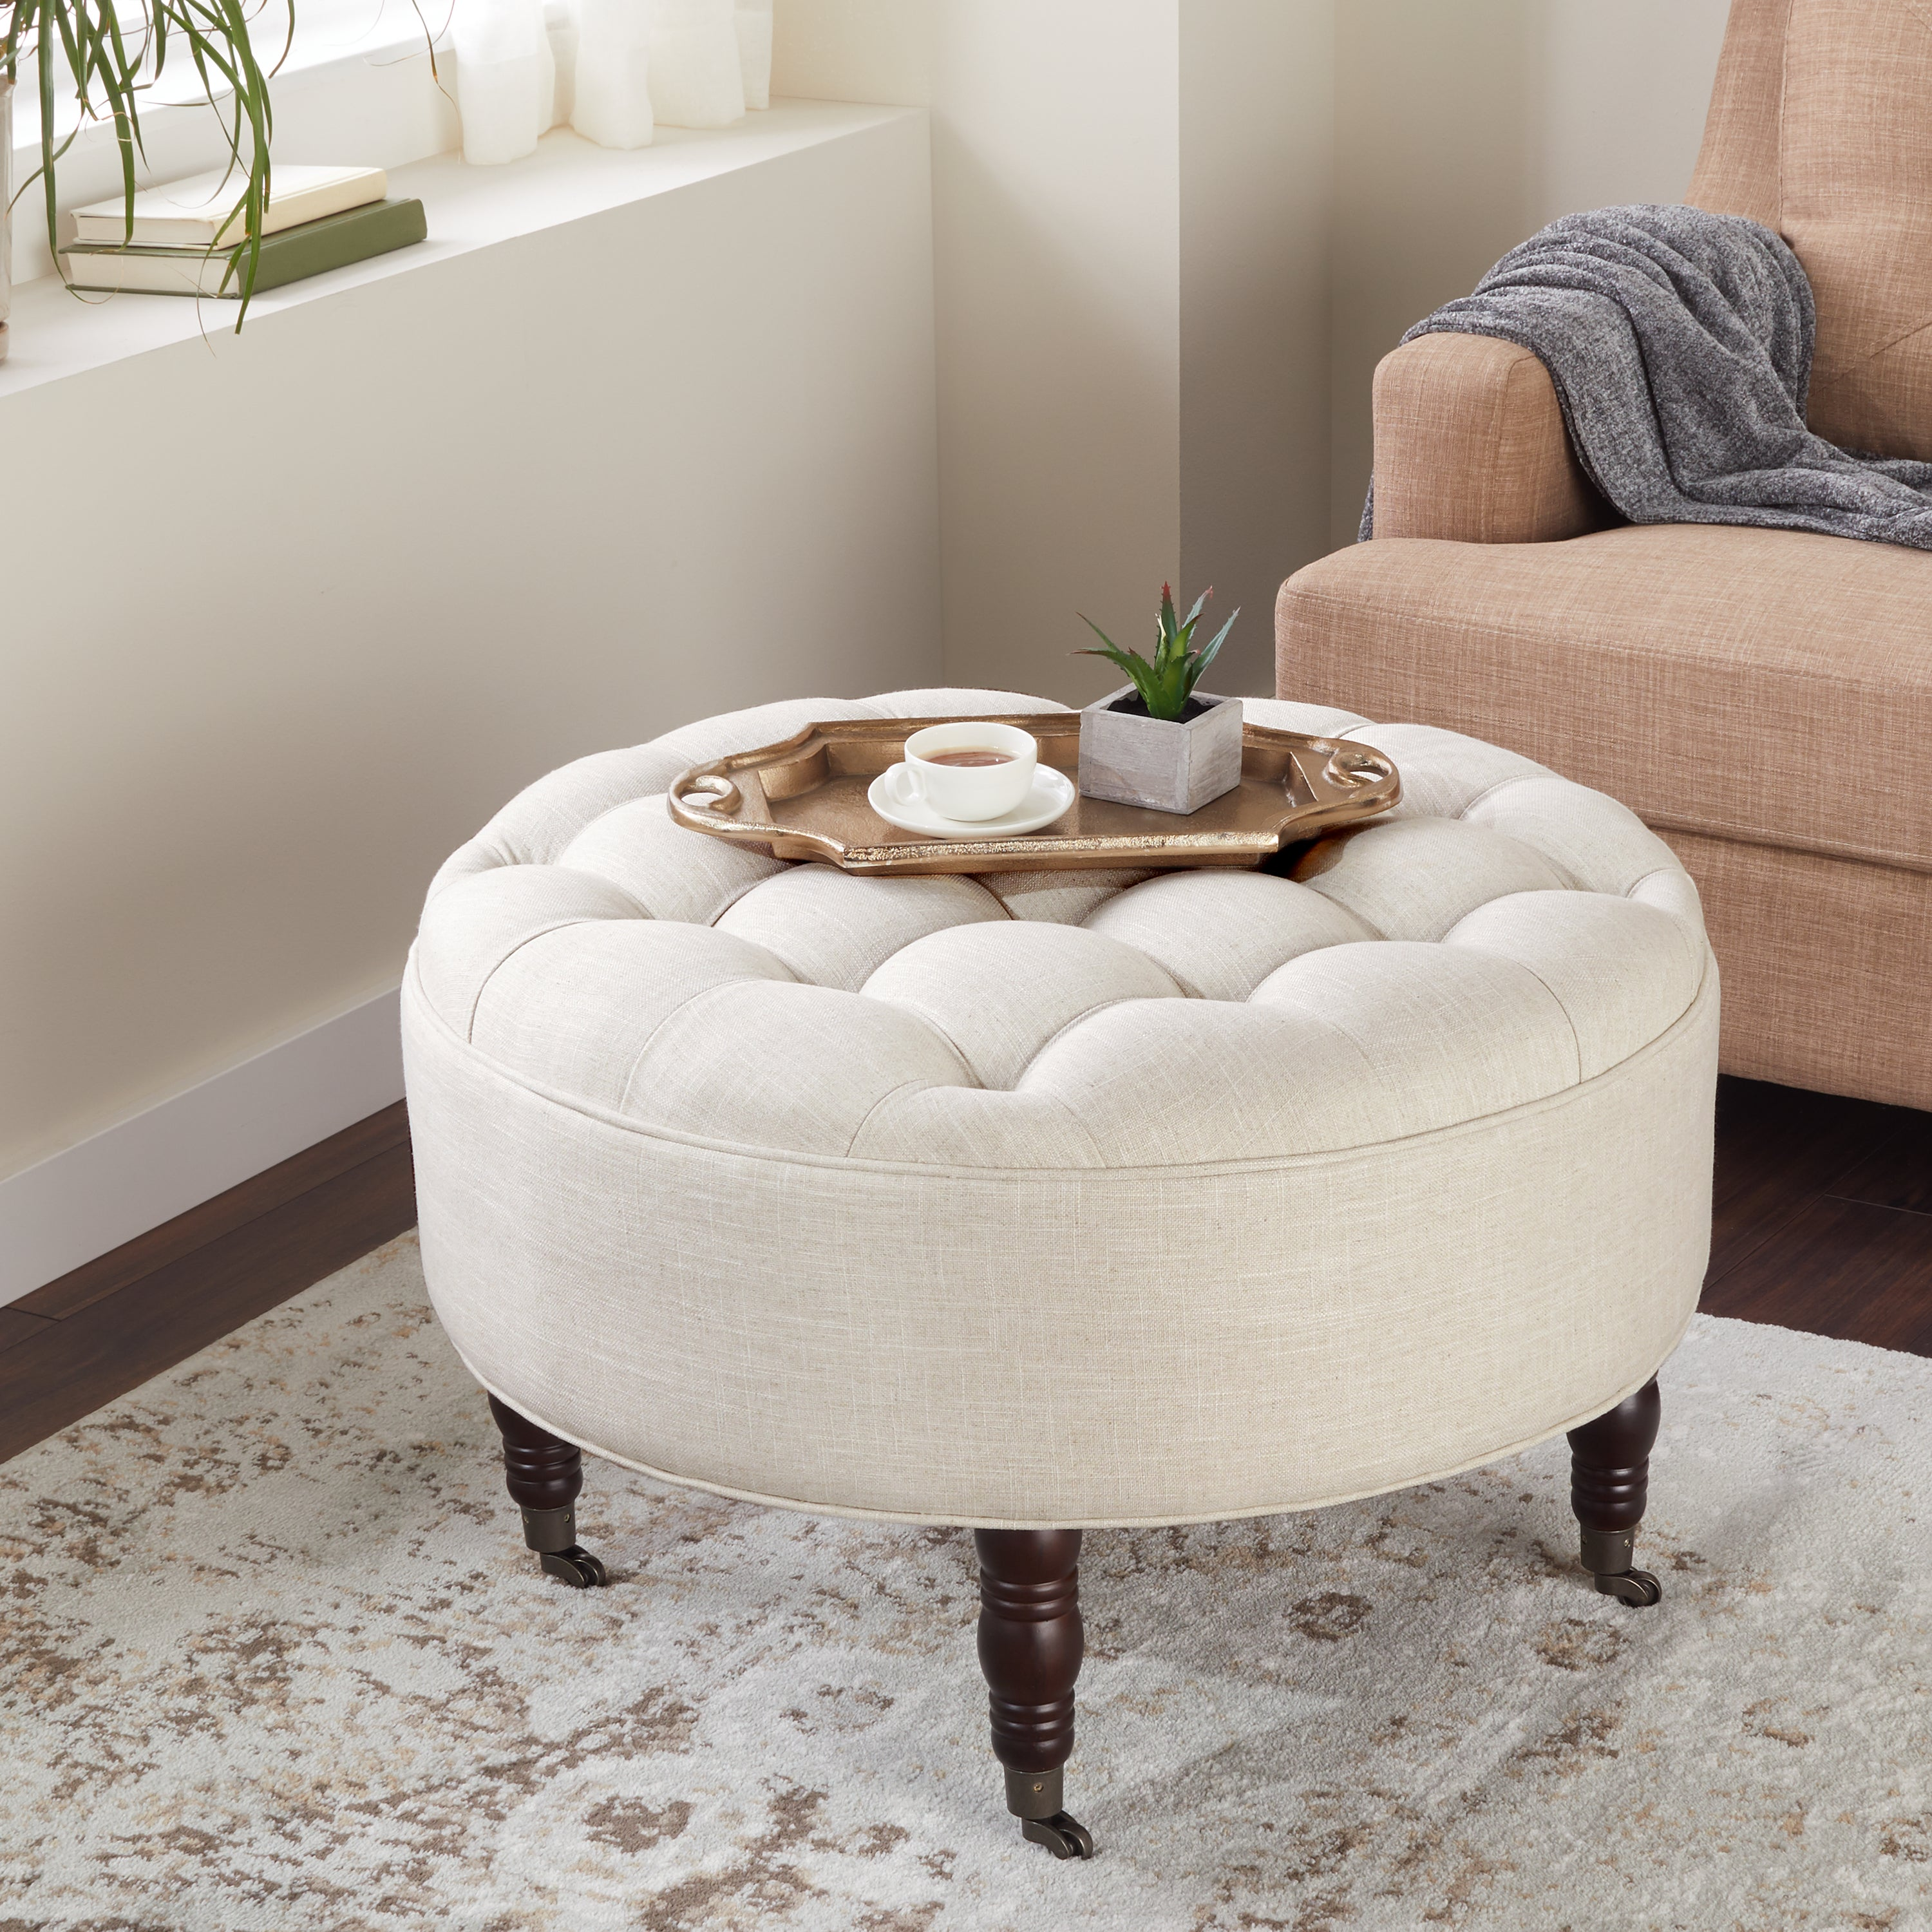 Marvelous Abbyson Clarence Tufted Round Ottoman Ibusinesslaw Wood Chair Design Ideas Ibusinesslaworg